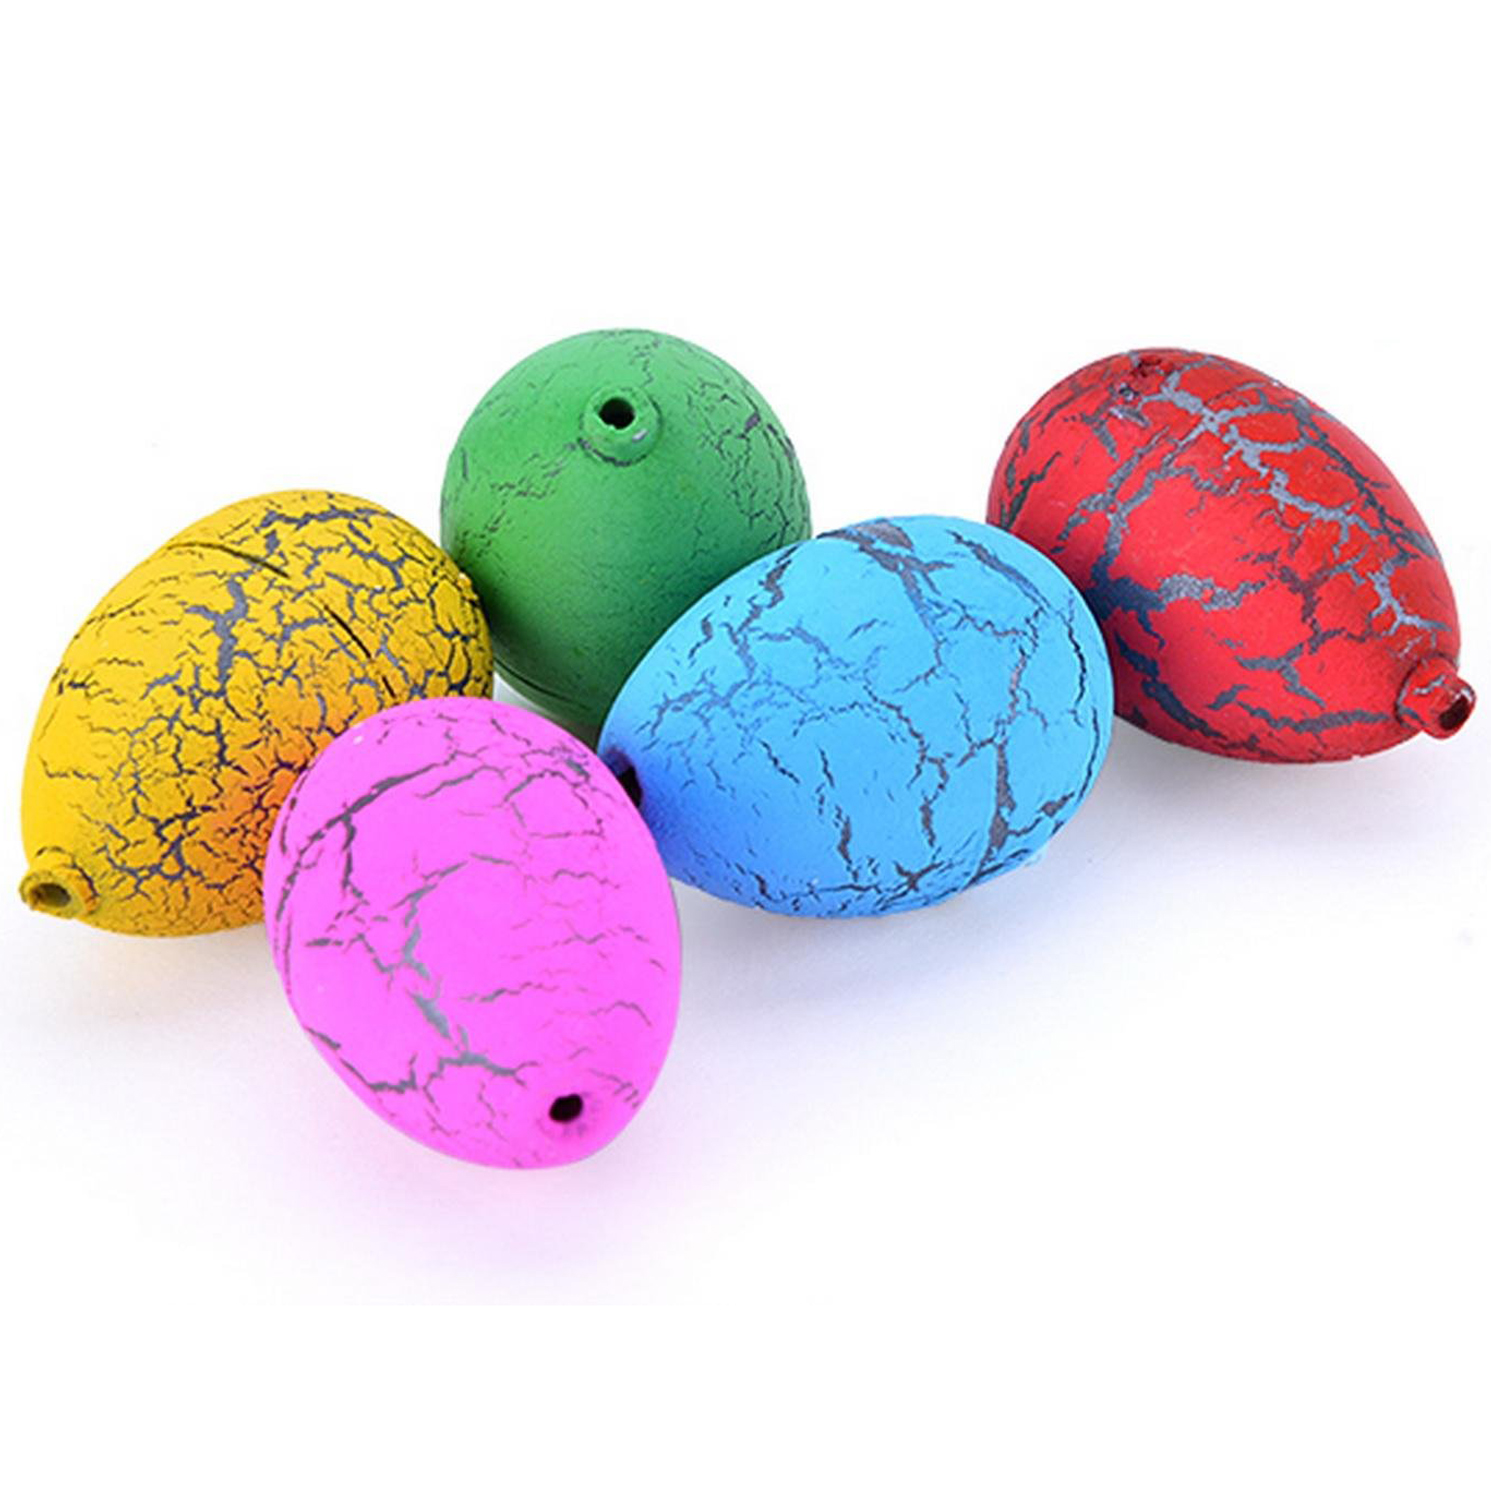 New 60PCS Hatching Growing Dino Eggs Add Water Magic Cute Children Toy Colorful